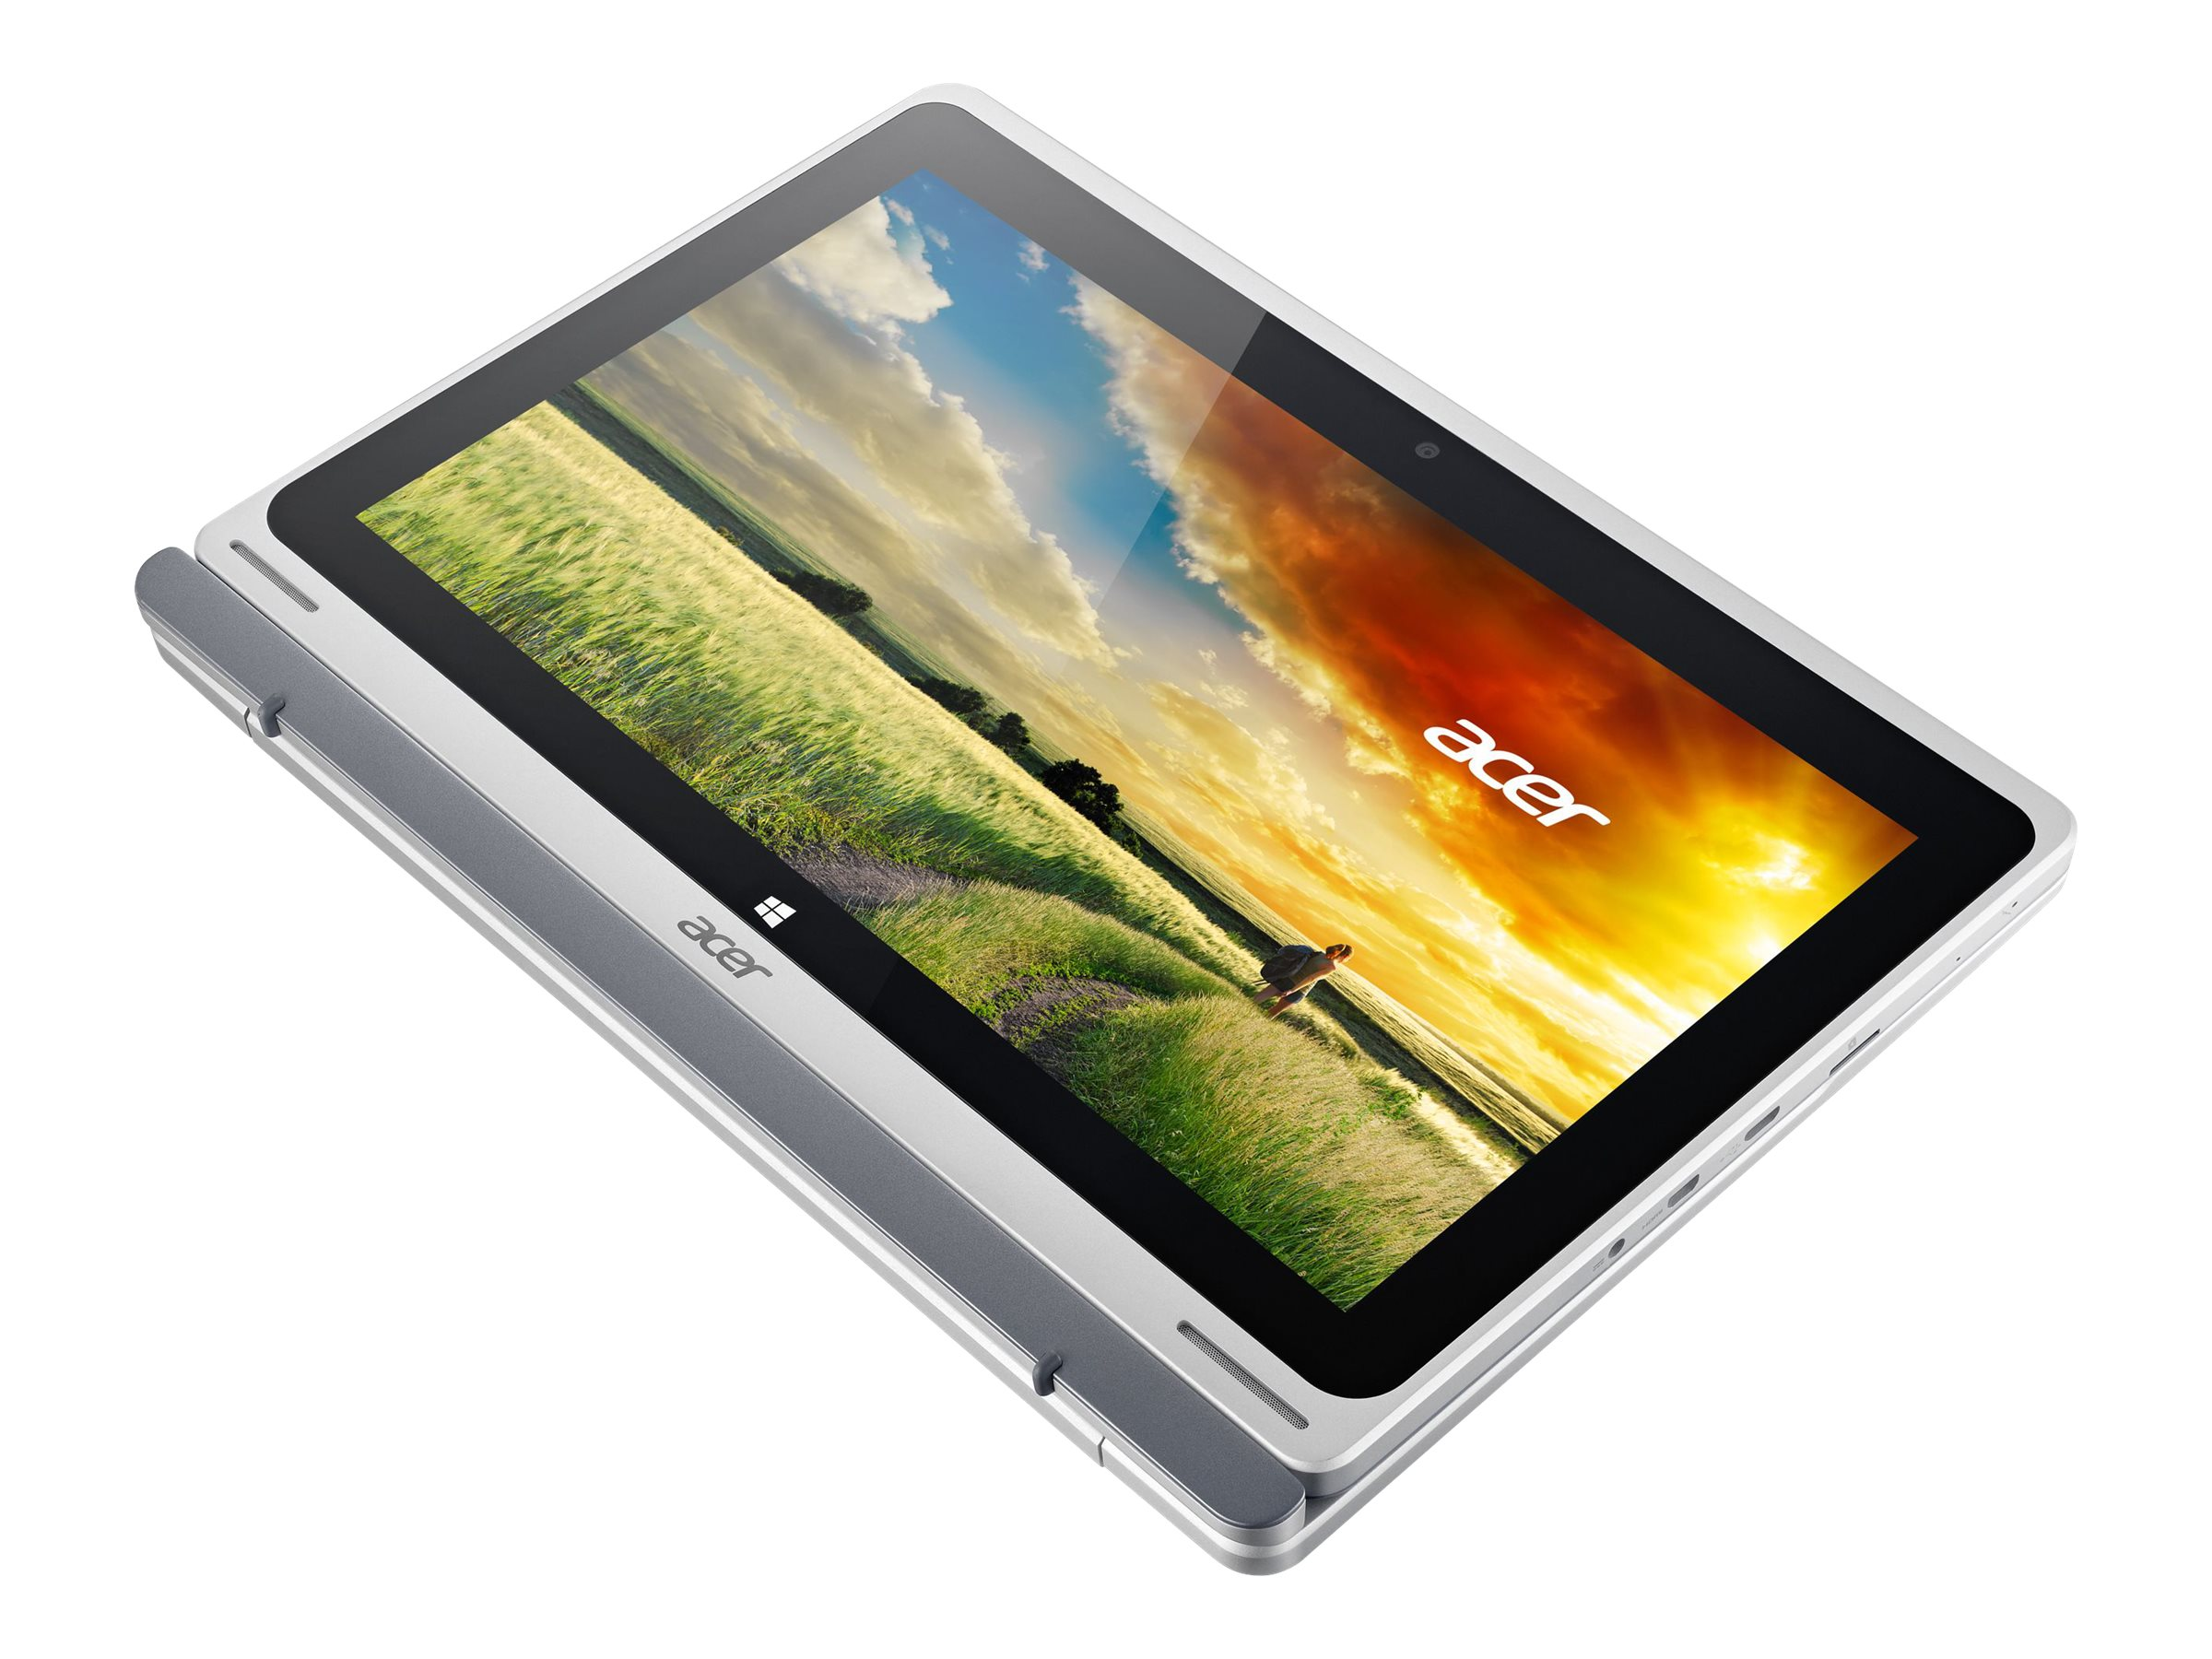 Acer Aspire Switch 10 SW5-012-11SK 1.33GHz processor Windows 8.1, NT.L4TAA.011, 17759208, Tablets